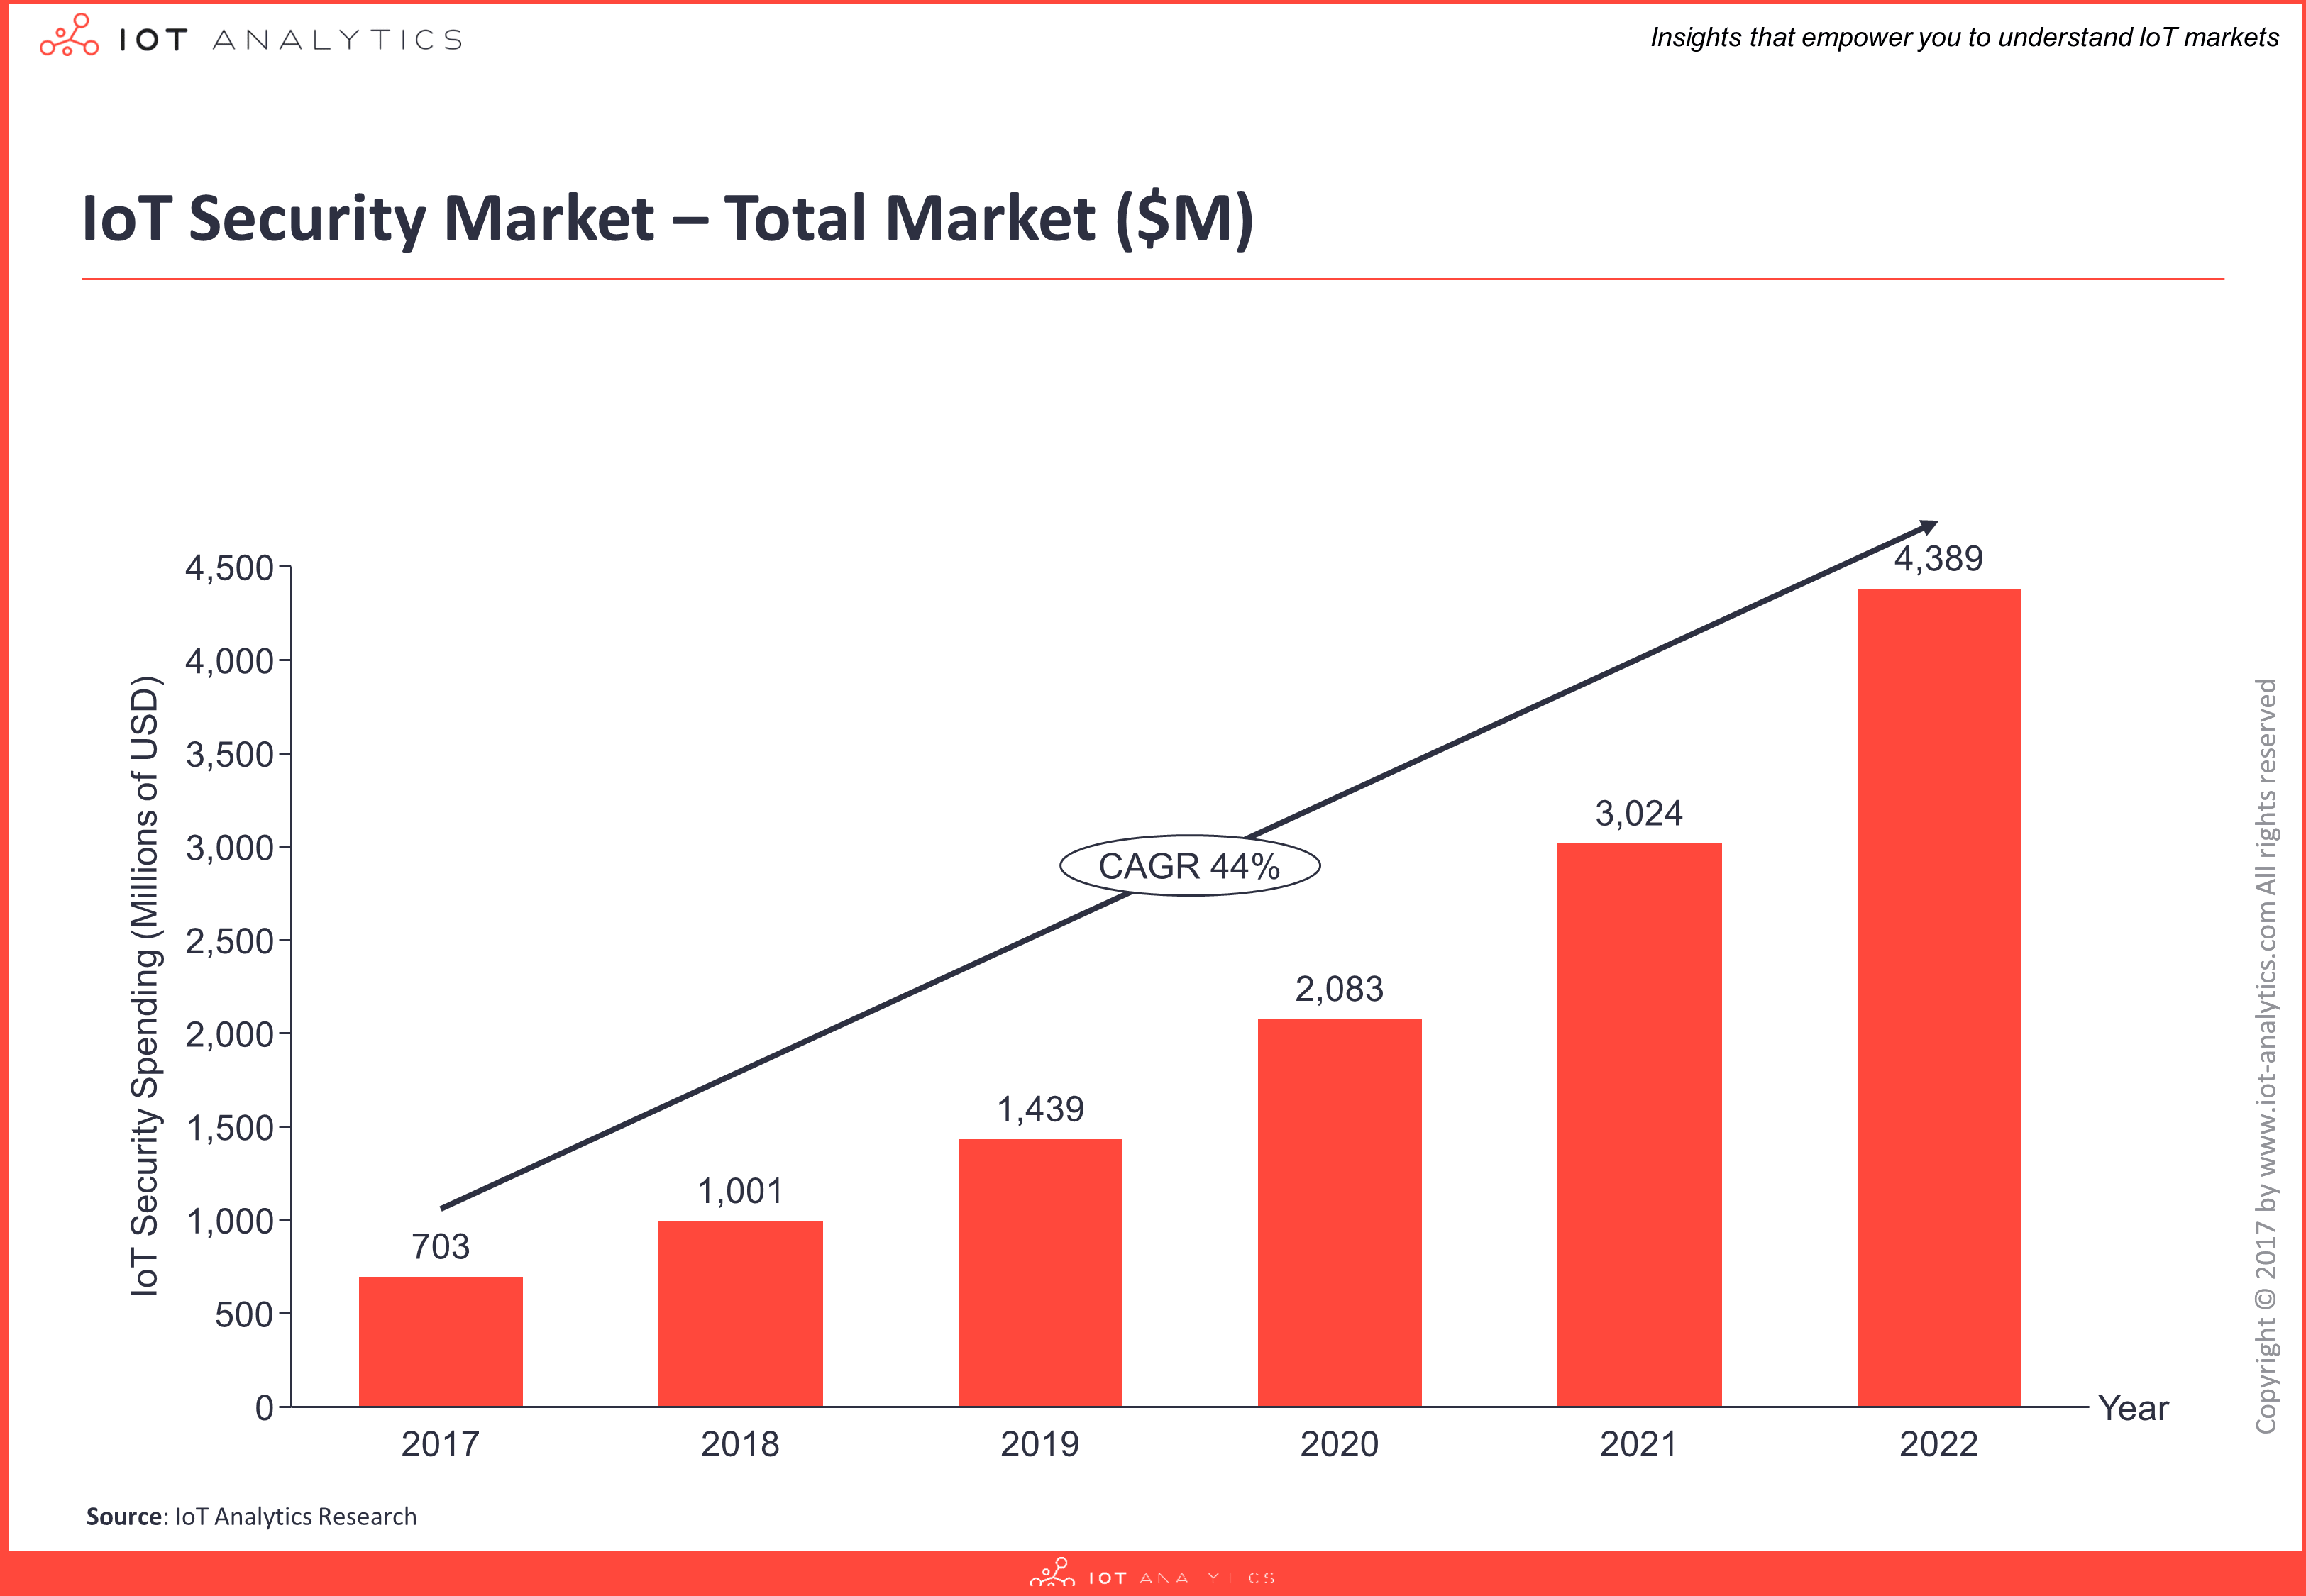 iot security market